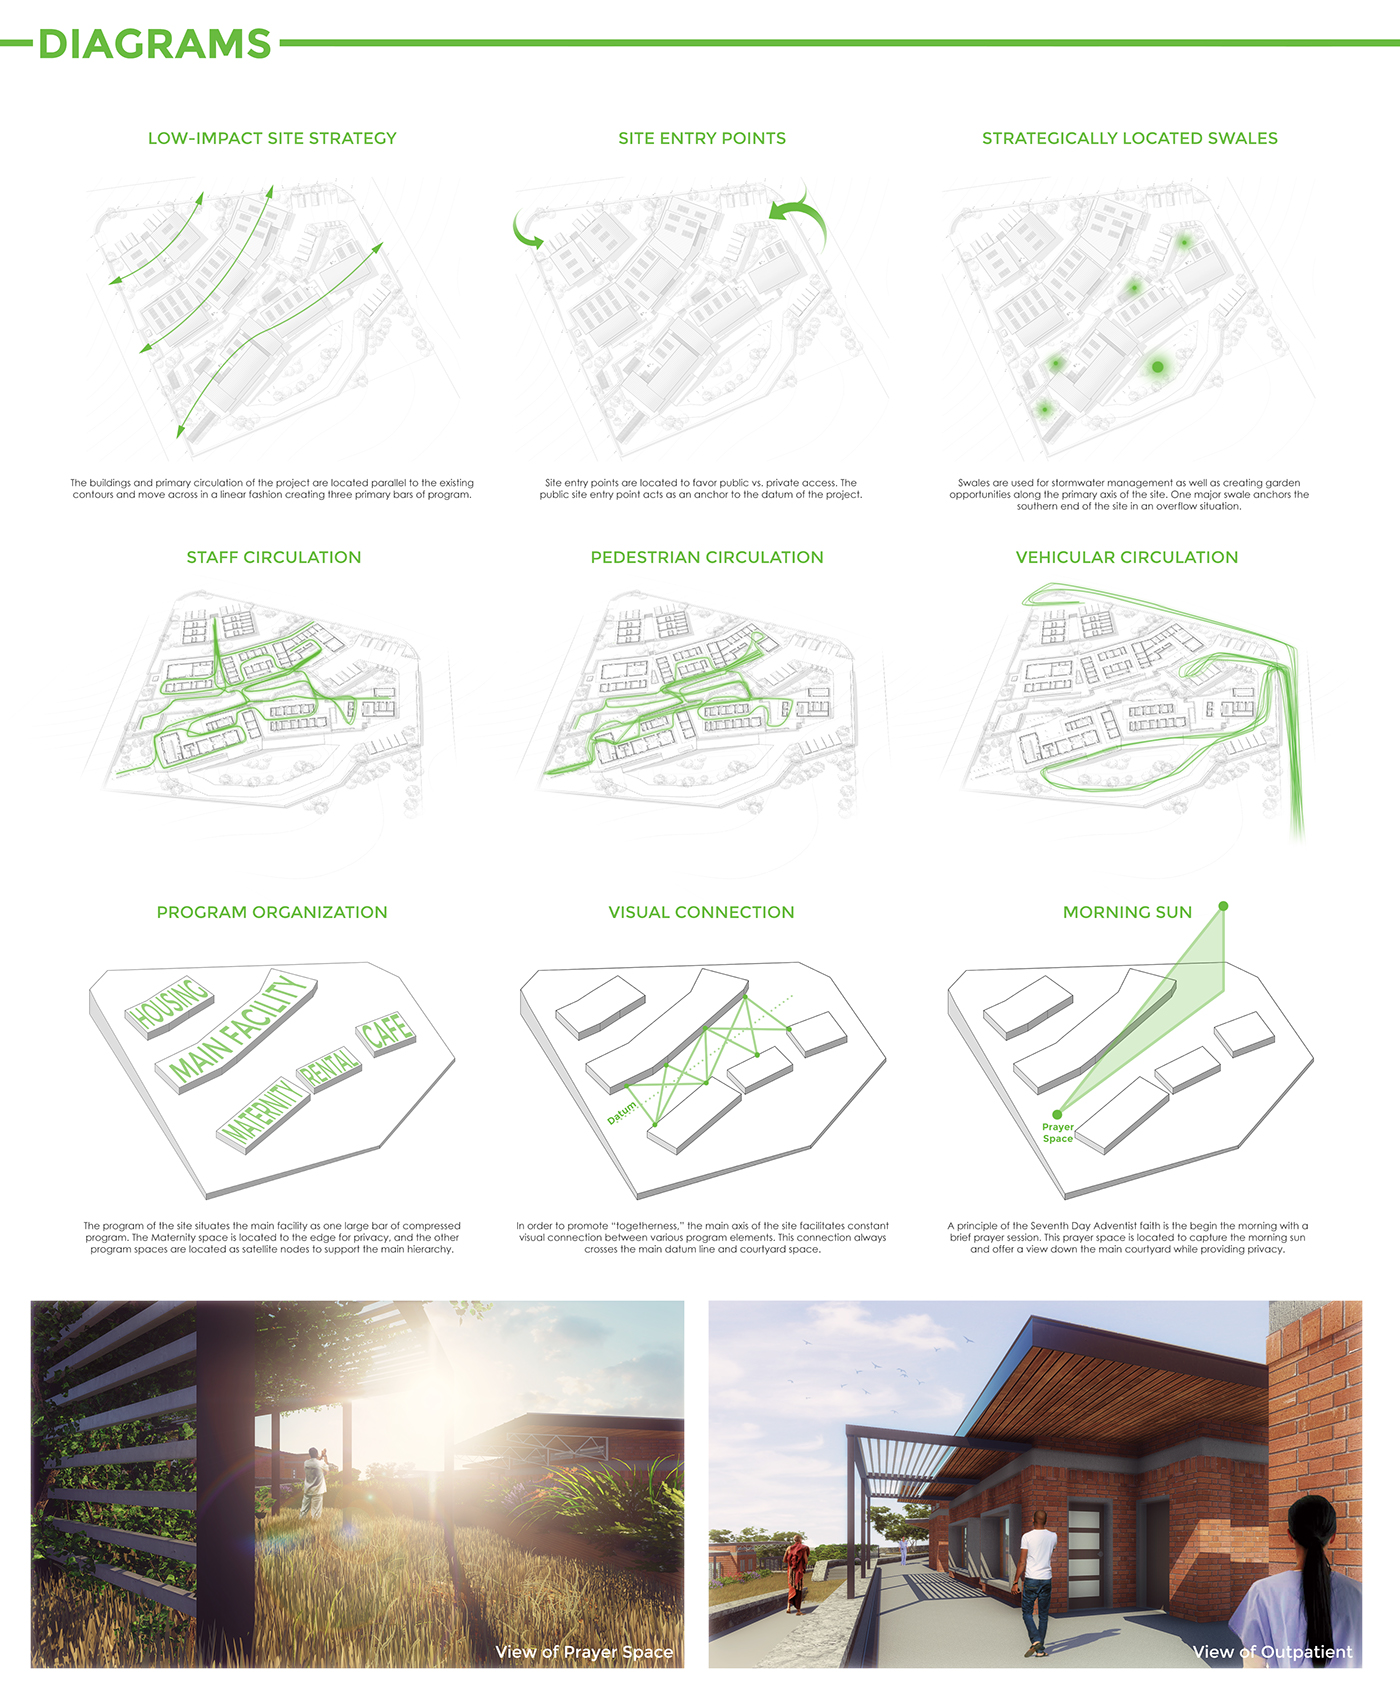 Limbe medical complex architecture thesis africa The Global Studio Design 9 Professor Chris Harnish